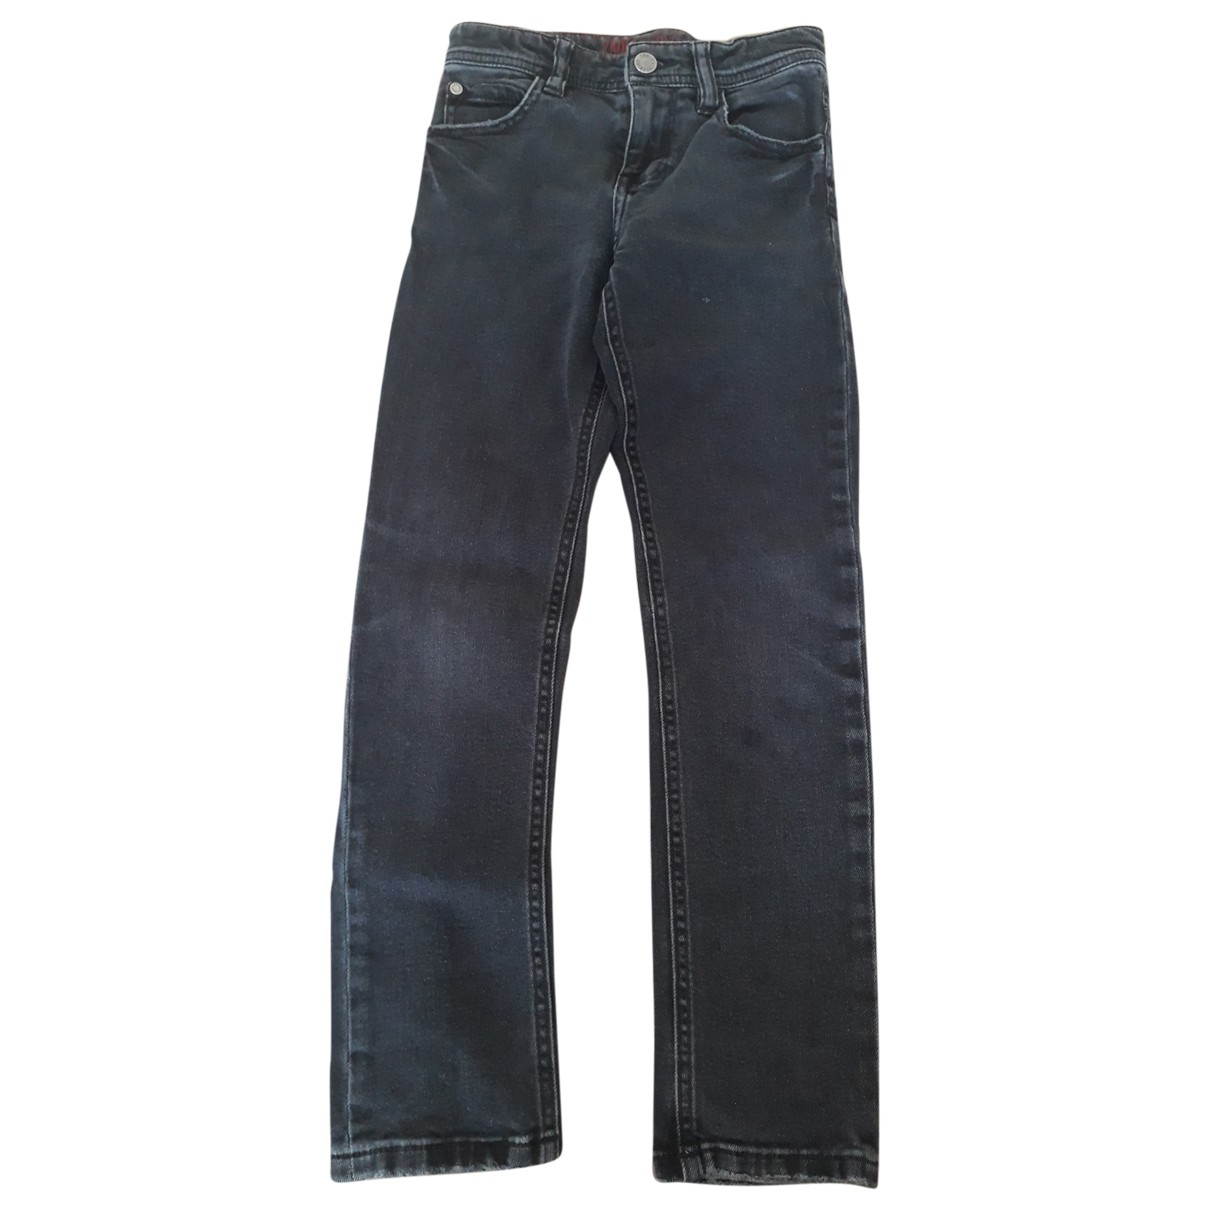 Zadig & Voltaire \N Grey Cotton Trousers for Kids 8 years - until 50 inches